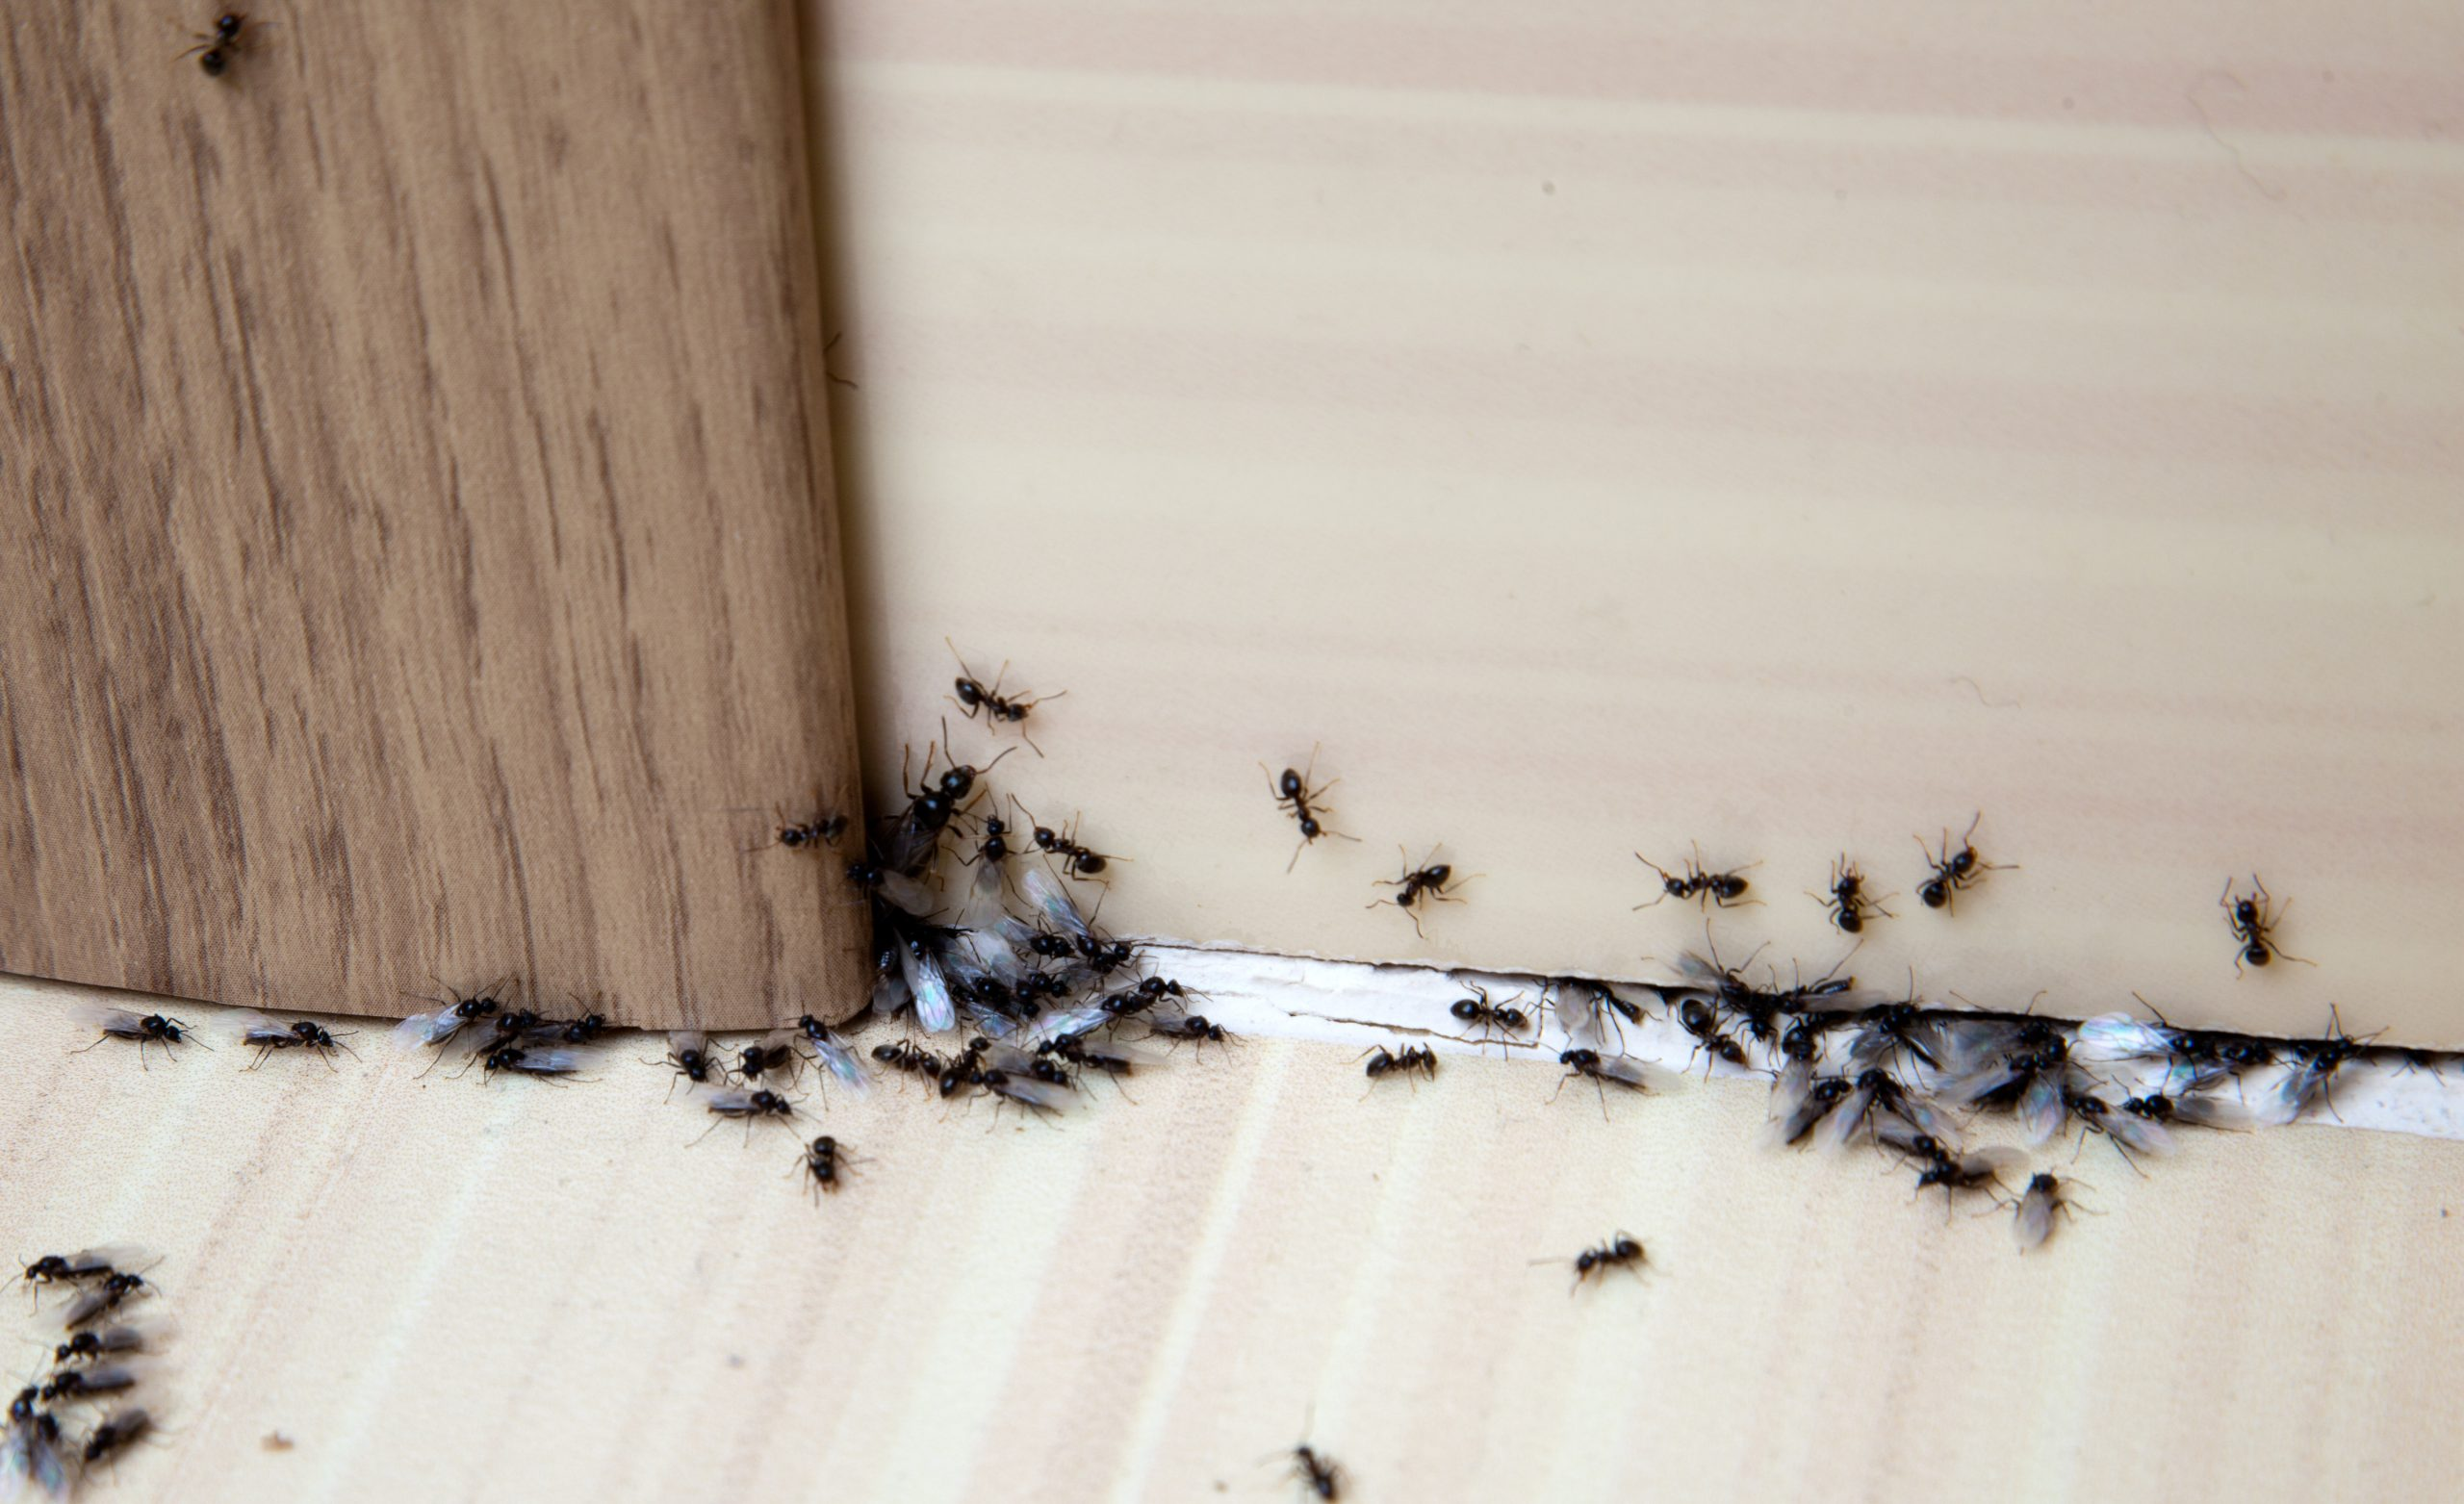 applying a natural ant killer to ants inside